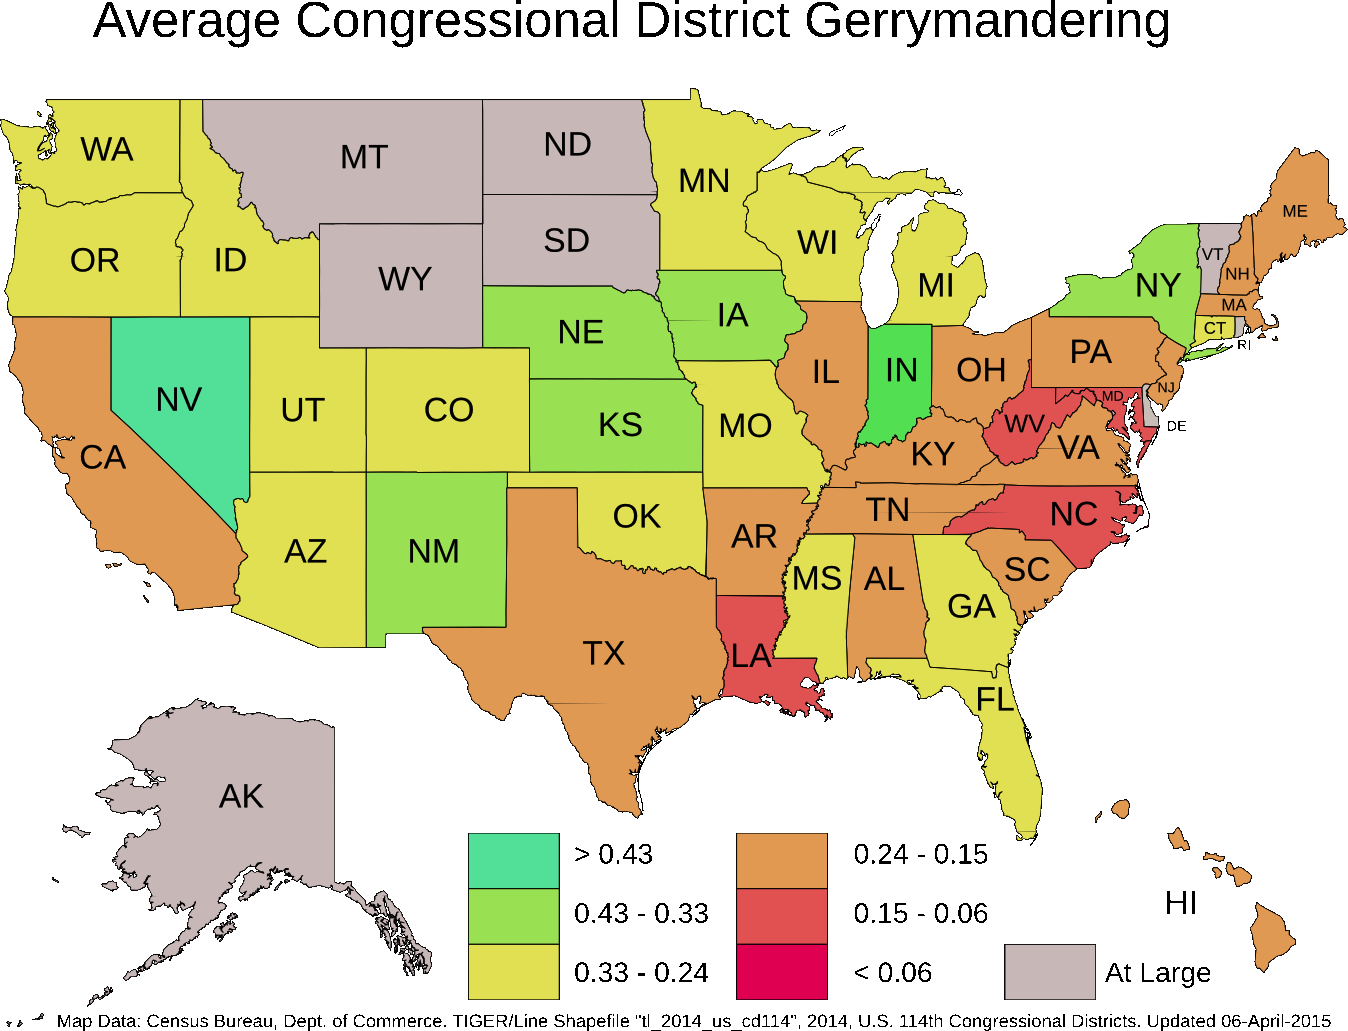 gerrymandering united states and congressional apportionment The constitutional basis for conducting the decennial census is to reapportion the us house of representatives apportionment is the process of dividing the 435 memberships, or seats, in the us house of representatives among the 50 states.